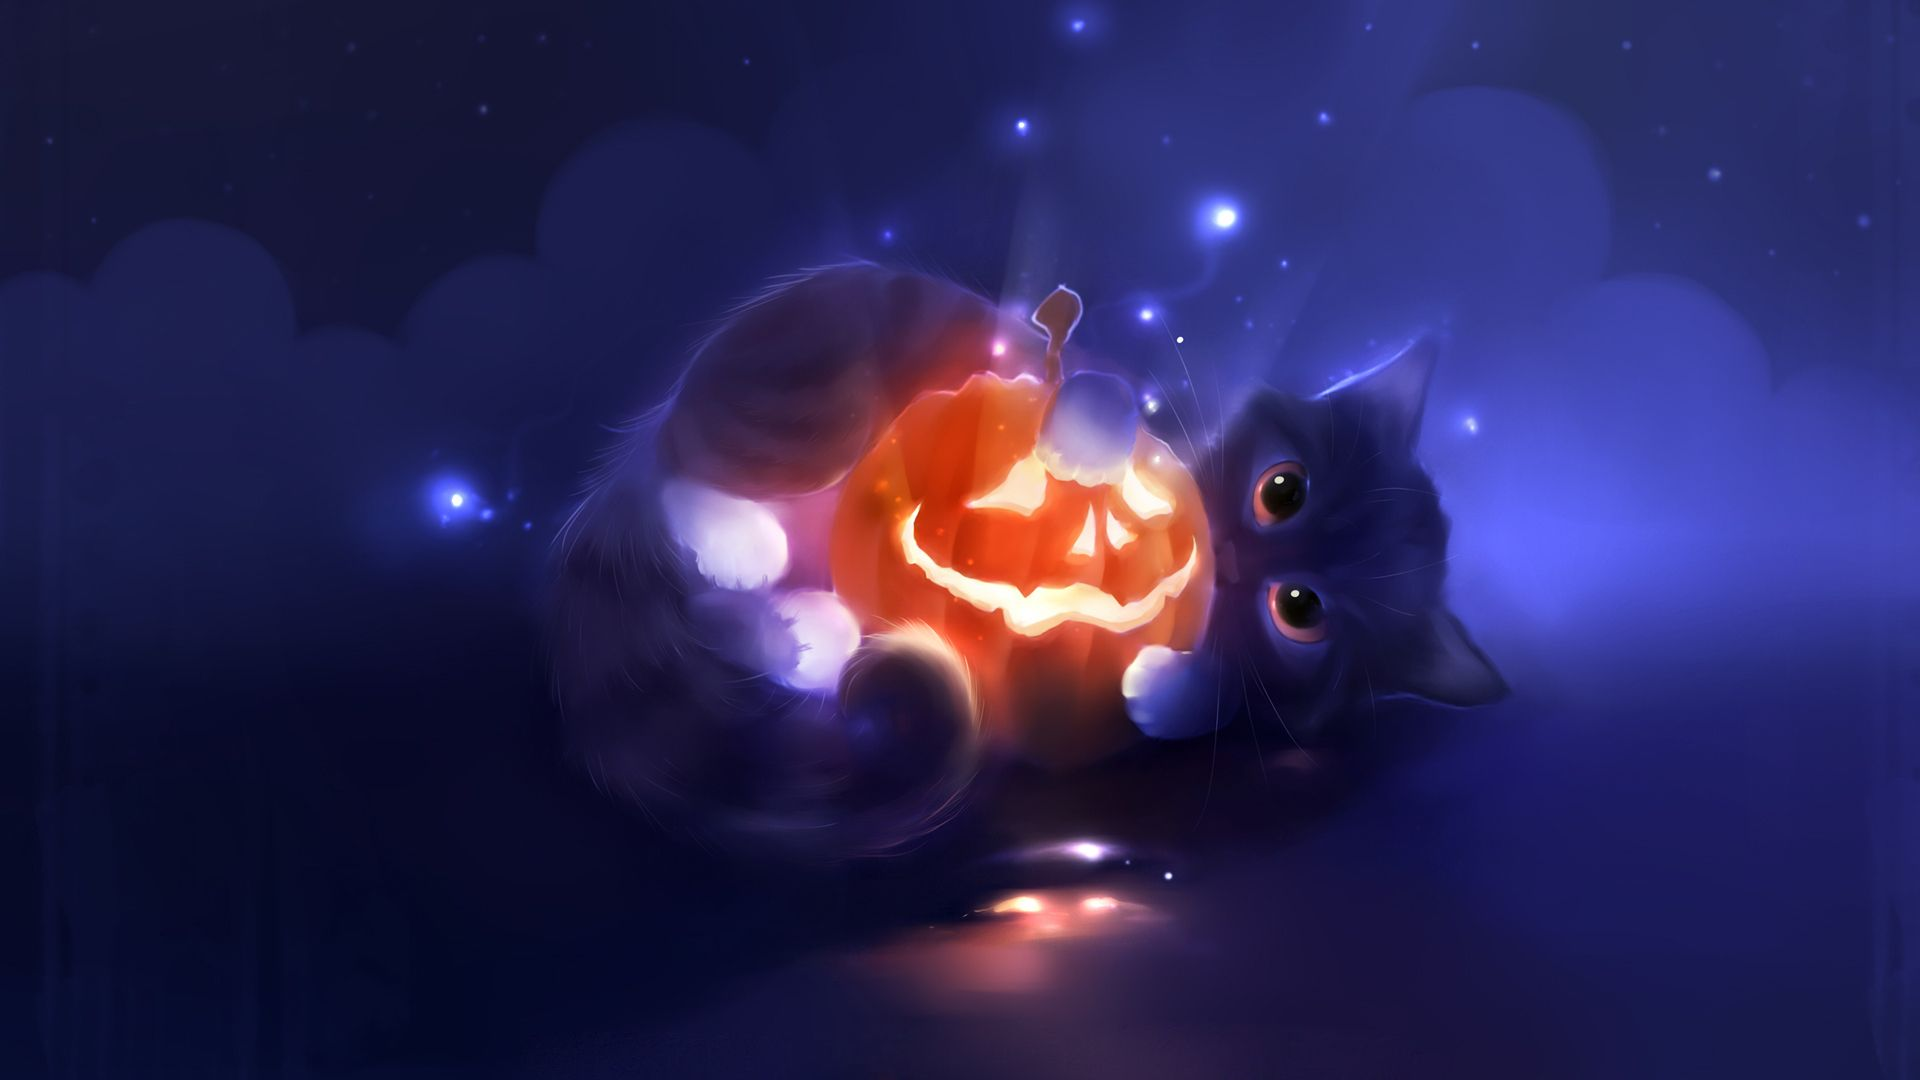 Cute Halloween Wallpaper 15765 Halloween Wallpaper Cute Wallpapers Pumpkin Wallpaper